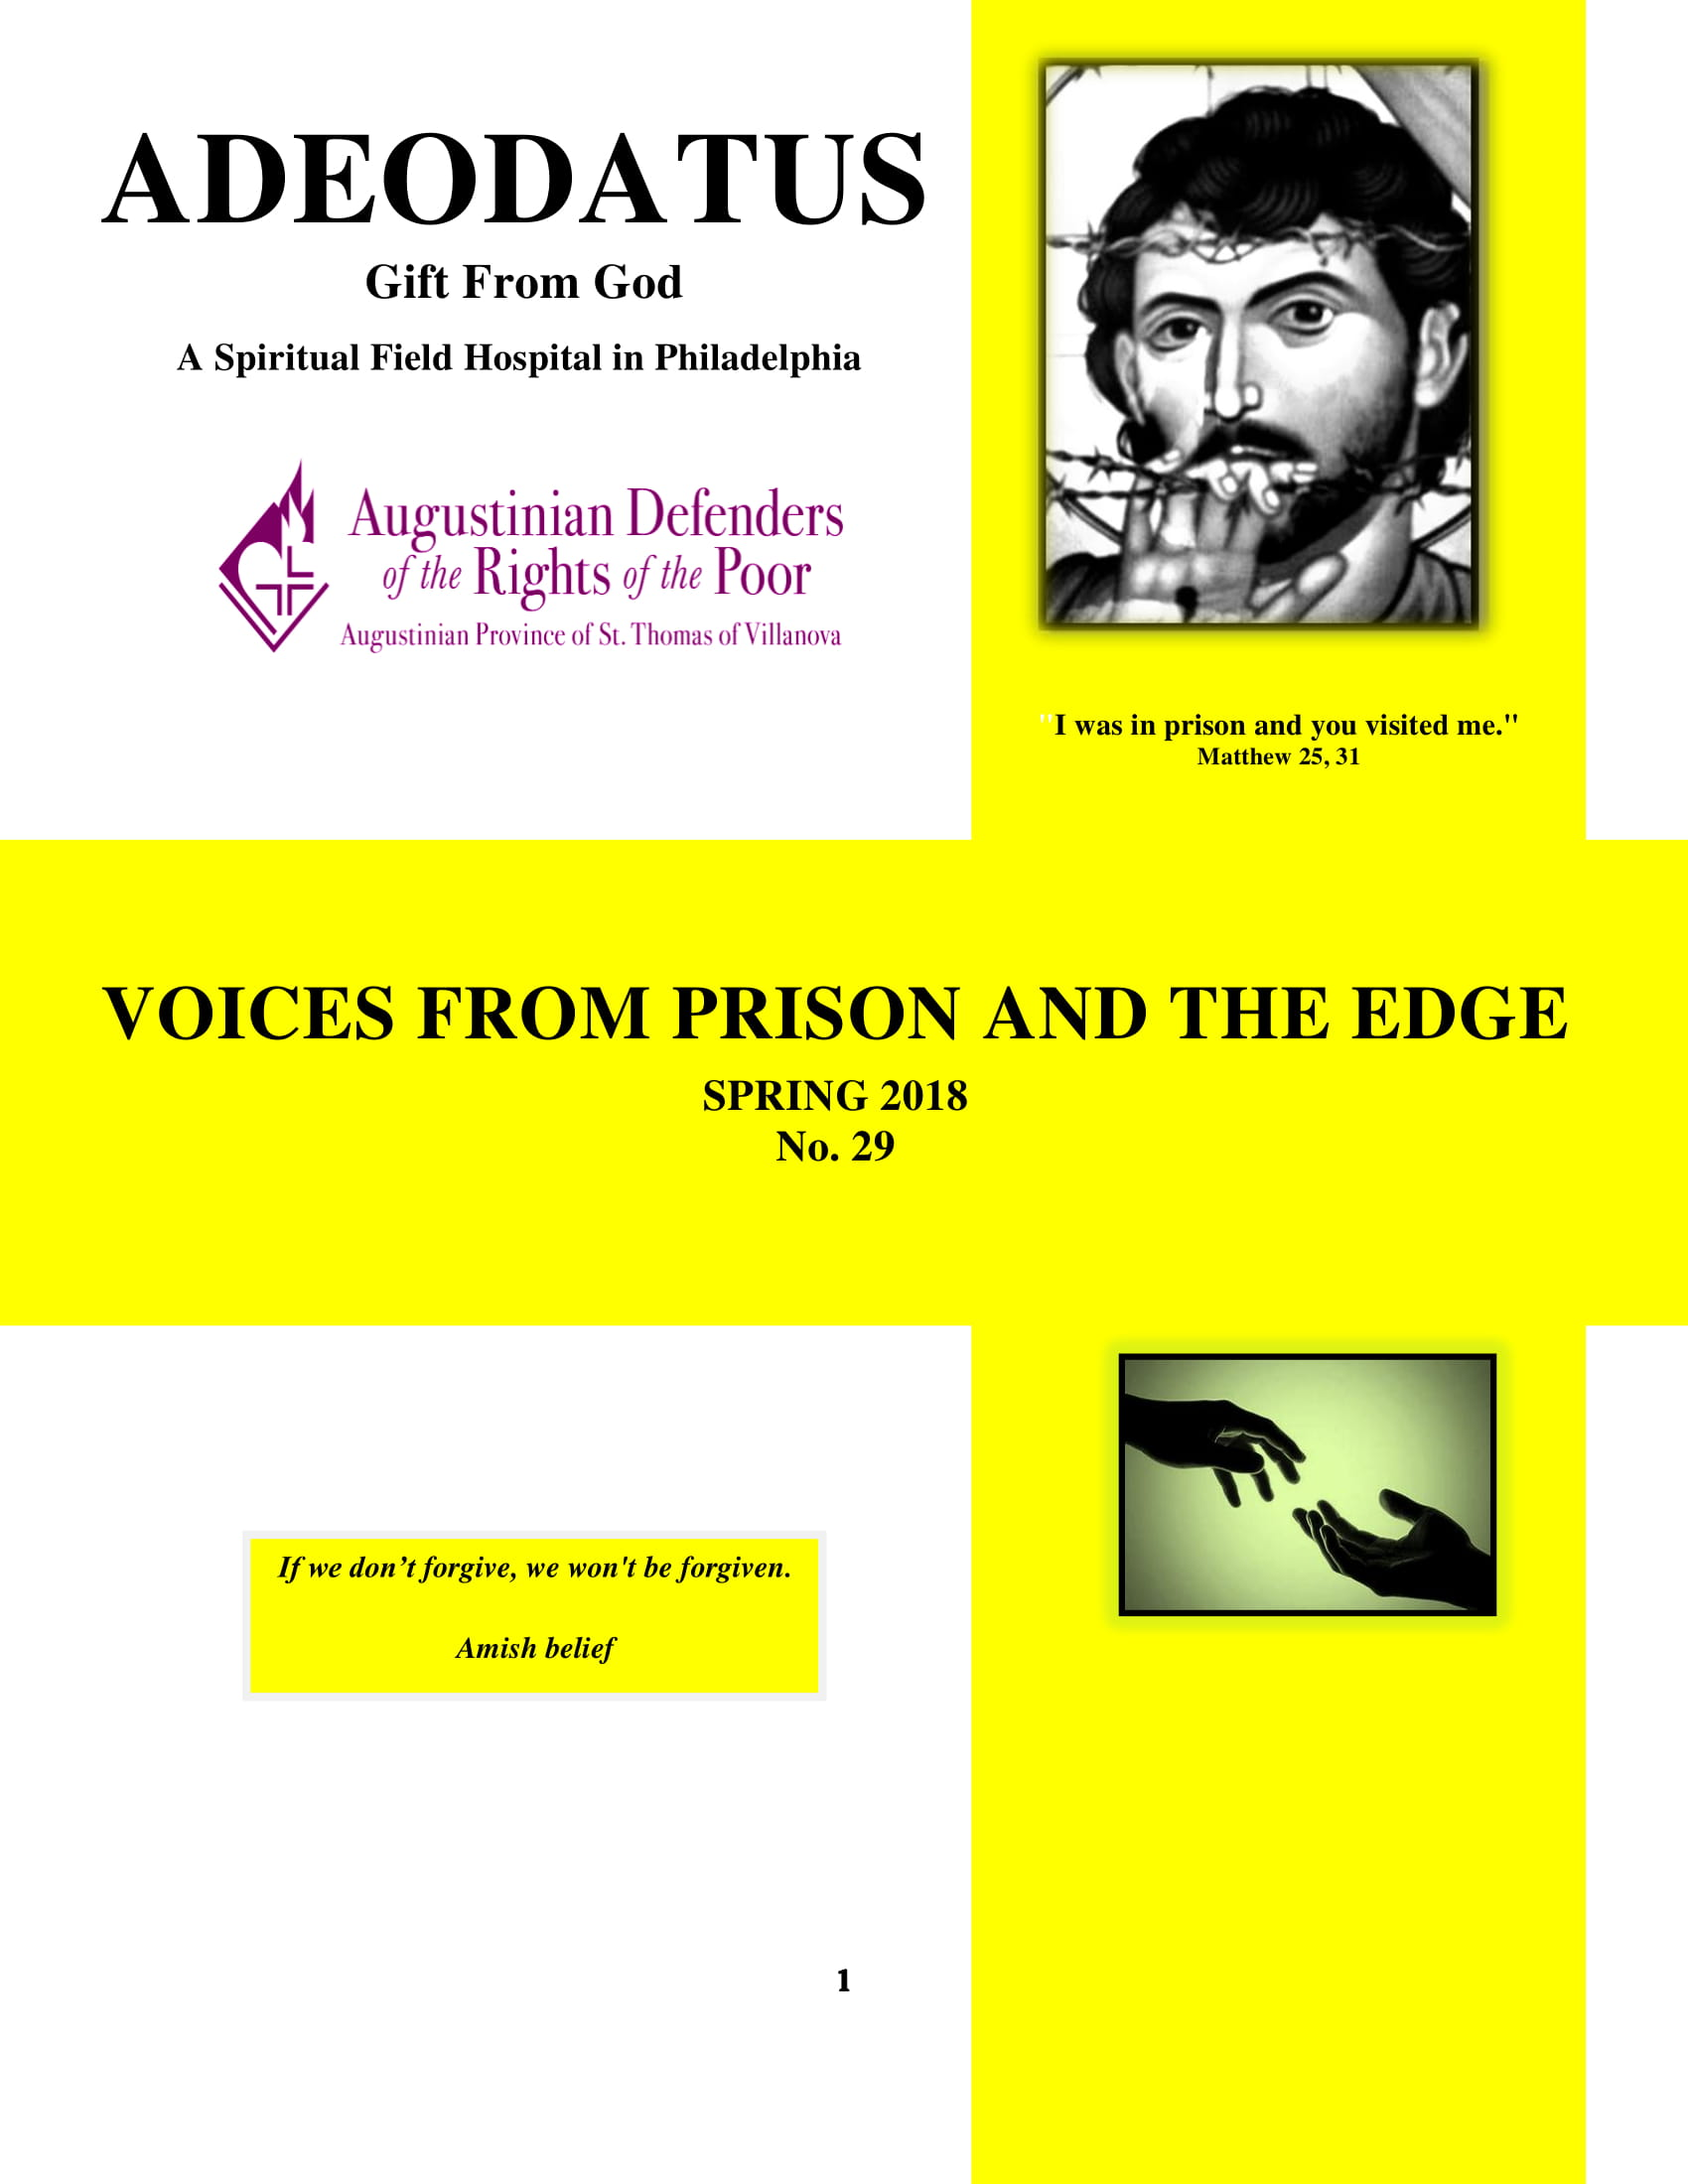 Voices From Prison 29-1.jpg